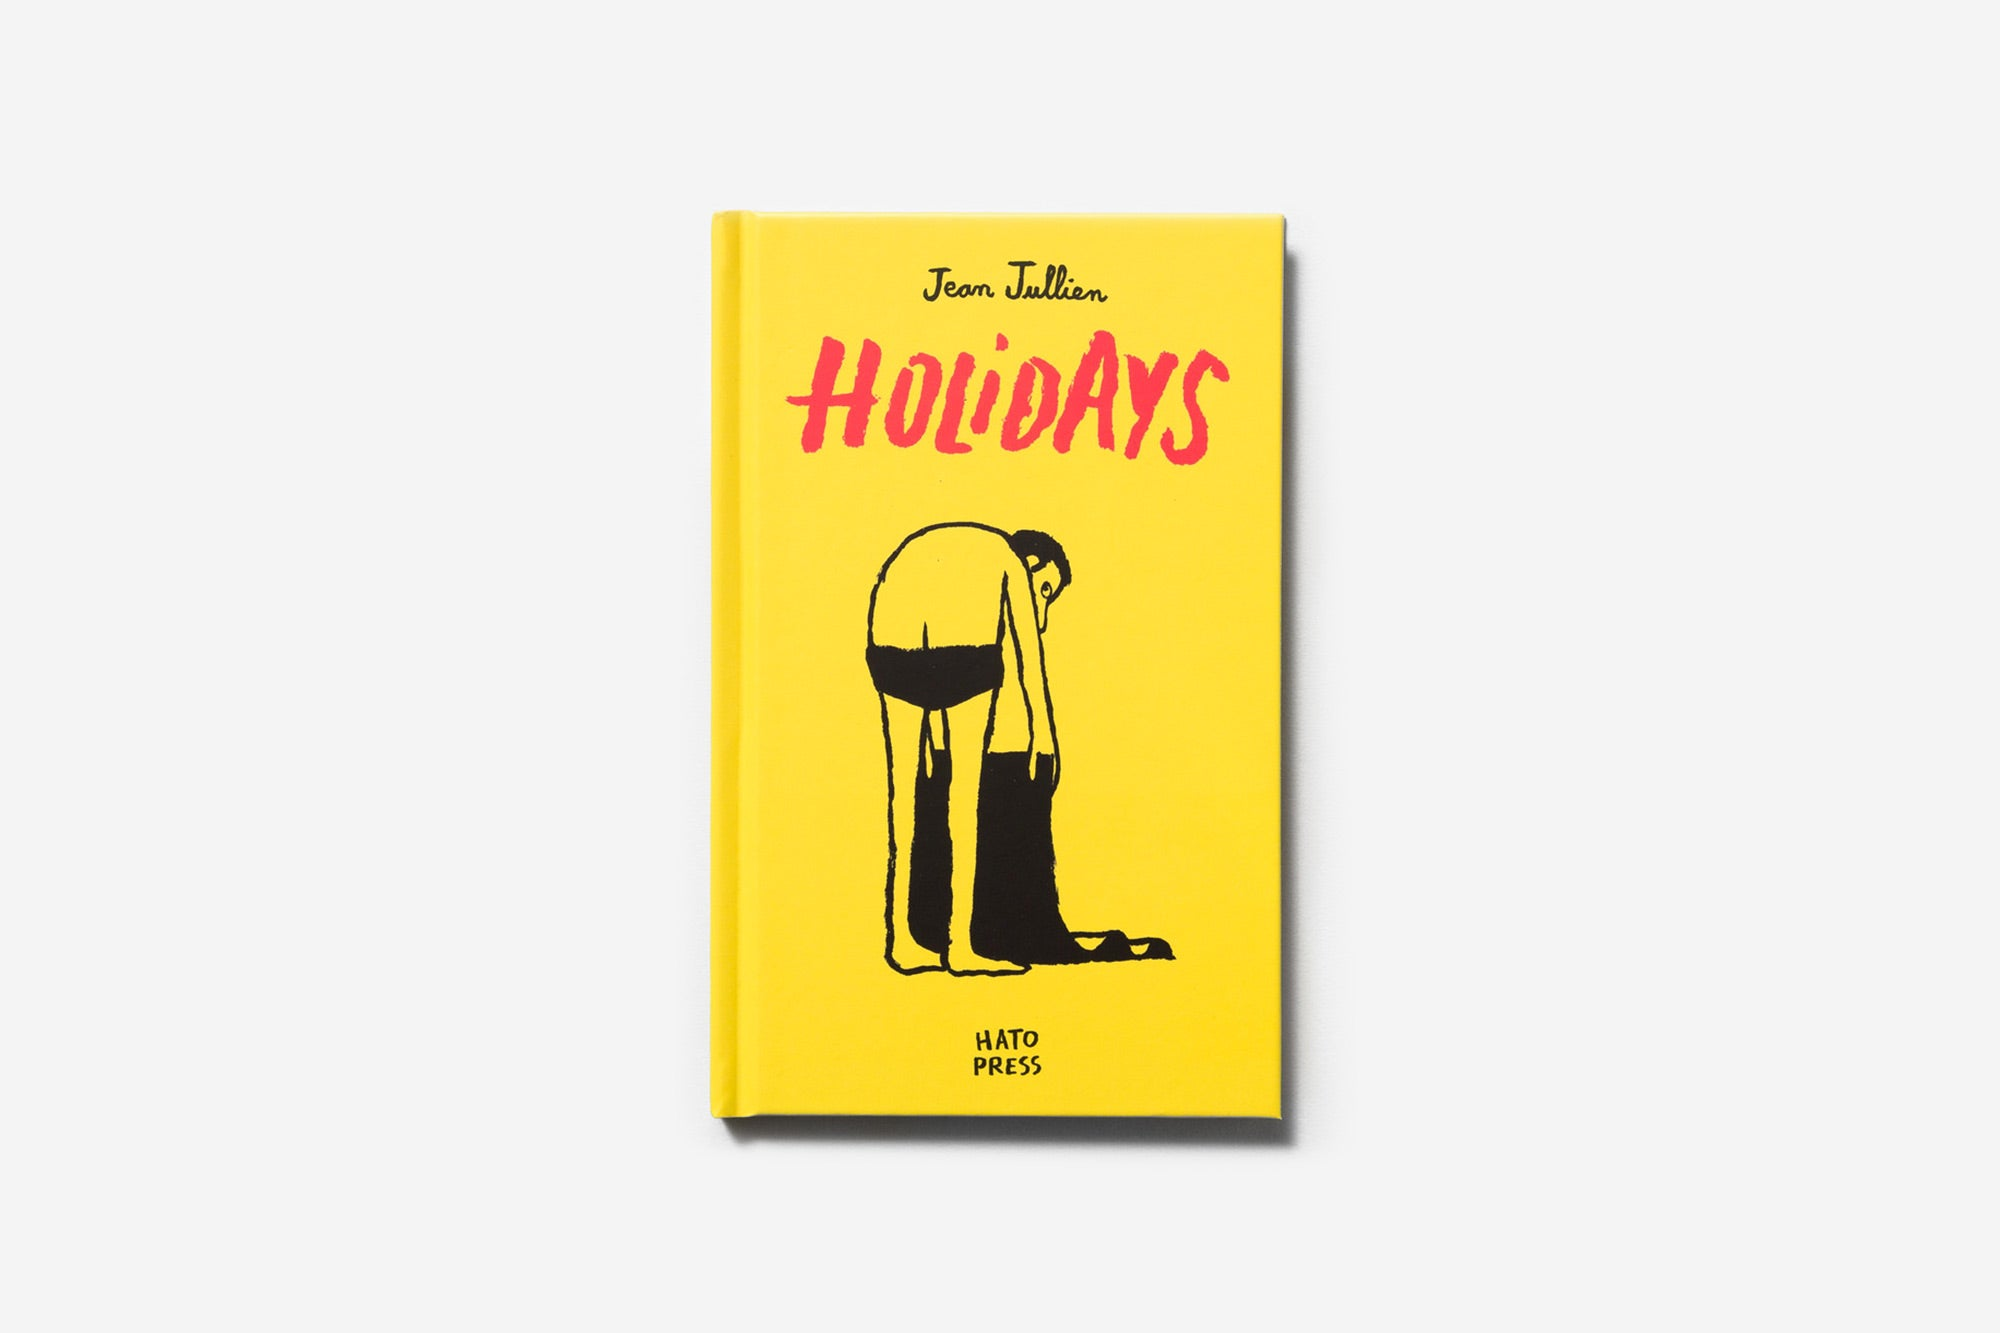 Holidays by Jean Jullien